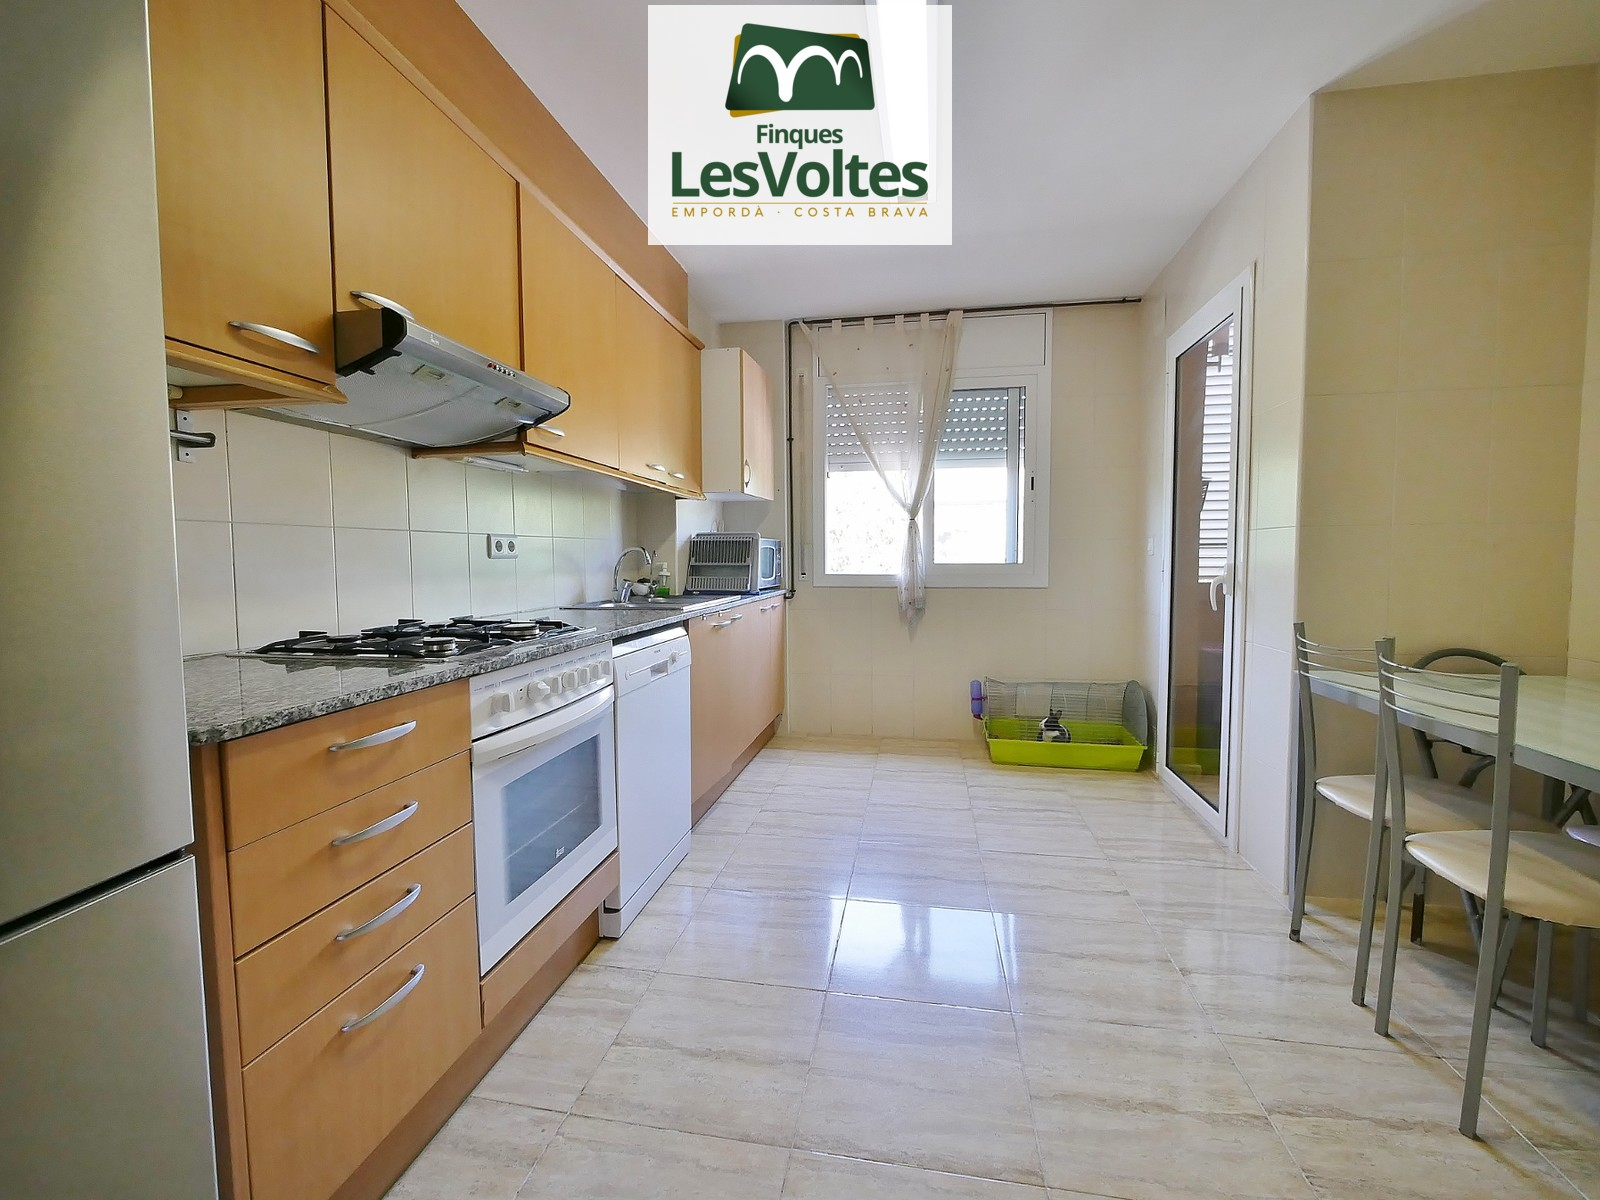 SPACIOUS APARTMENT OF 90M2 WITH PARKING AND STORAGE ROOM SITUATED IN A SMALL NEIGHBORHOOD COMMUNITY NEAR THE CENTER. QUIET AN